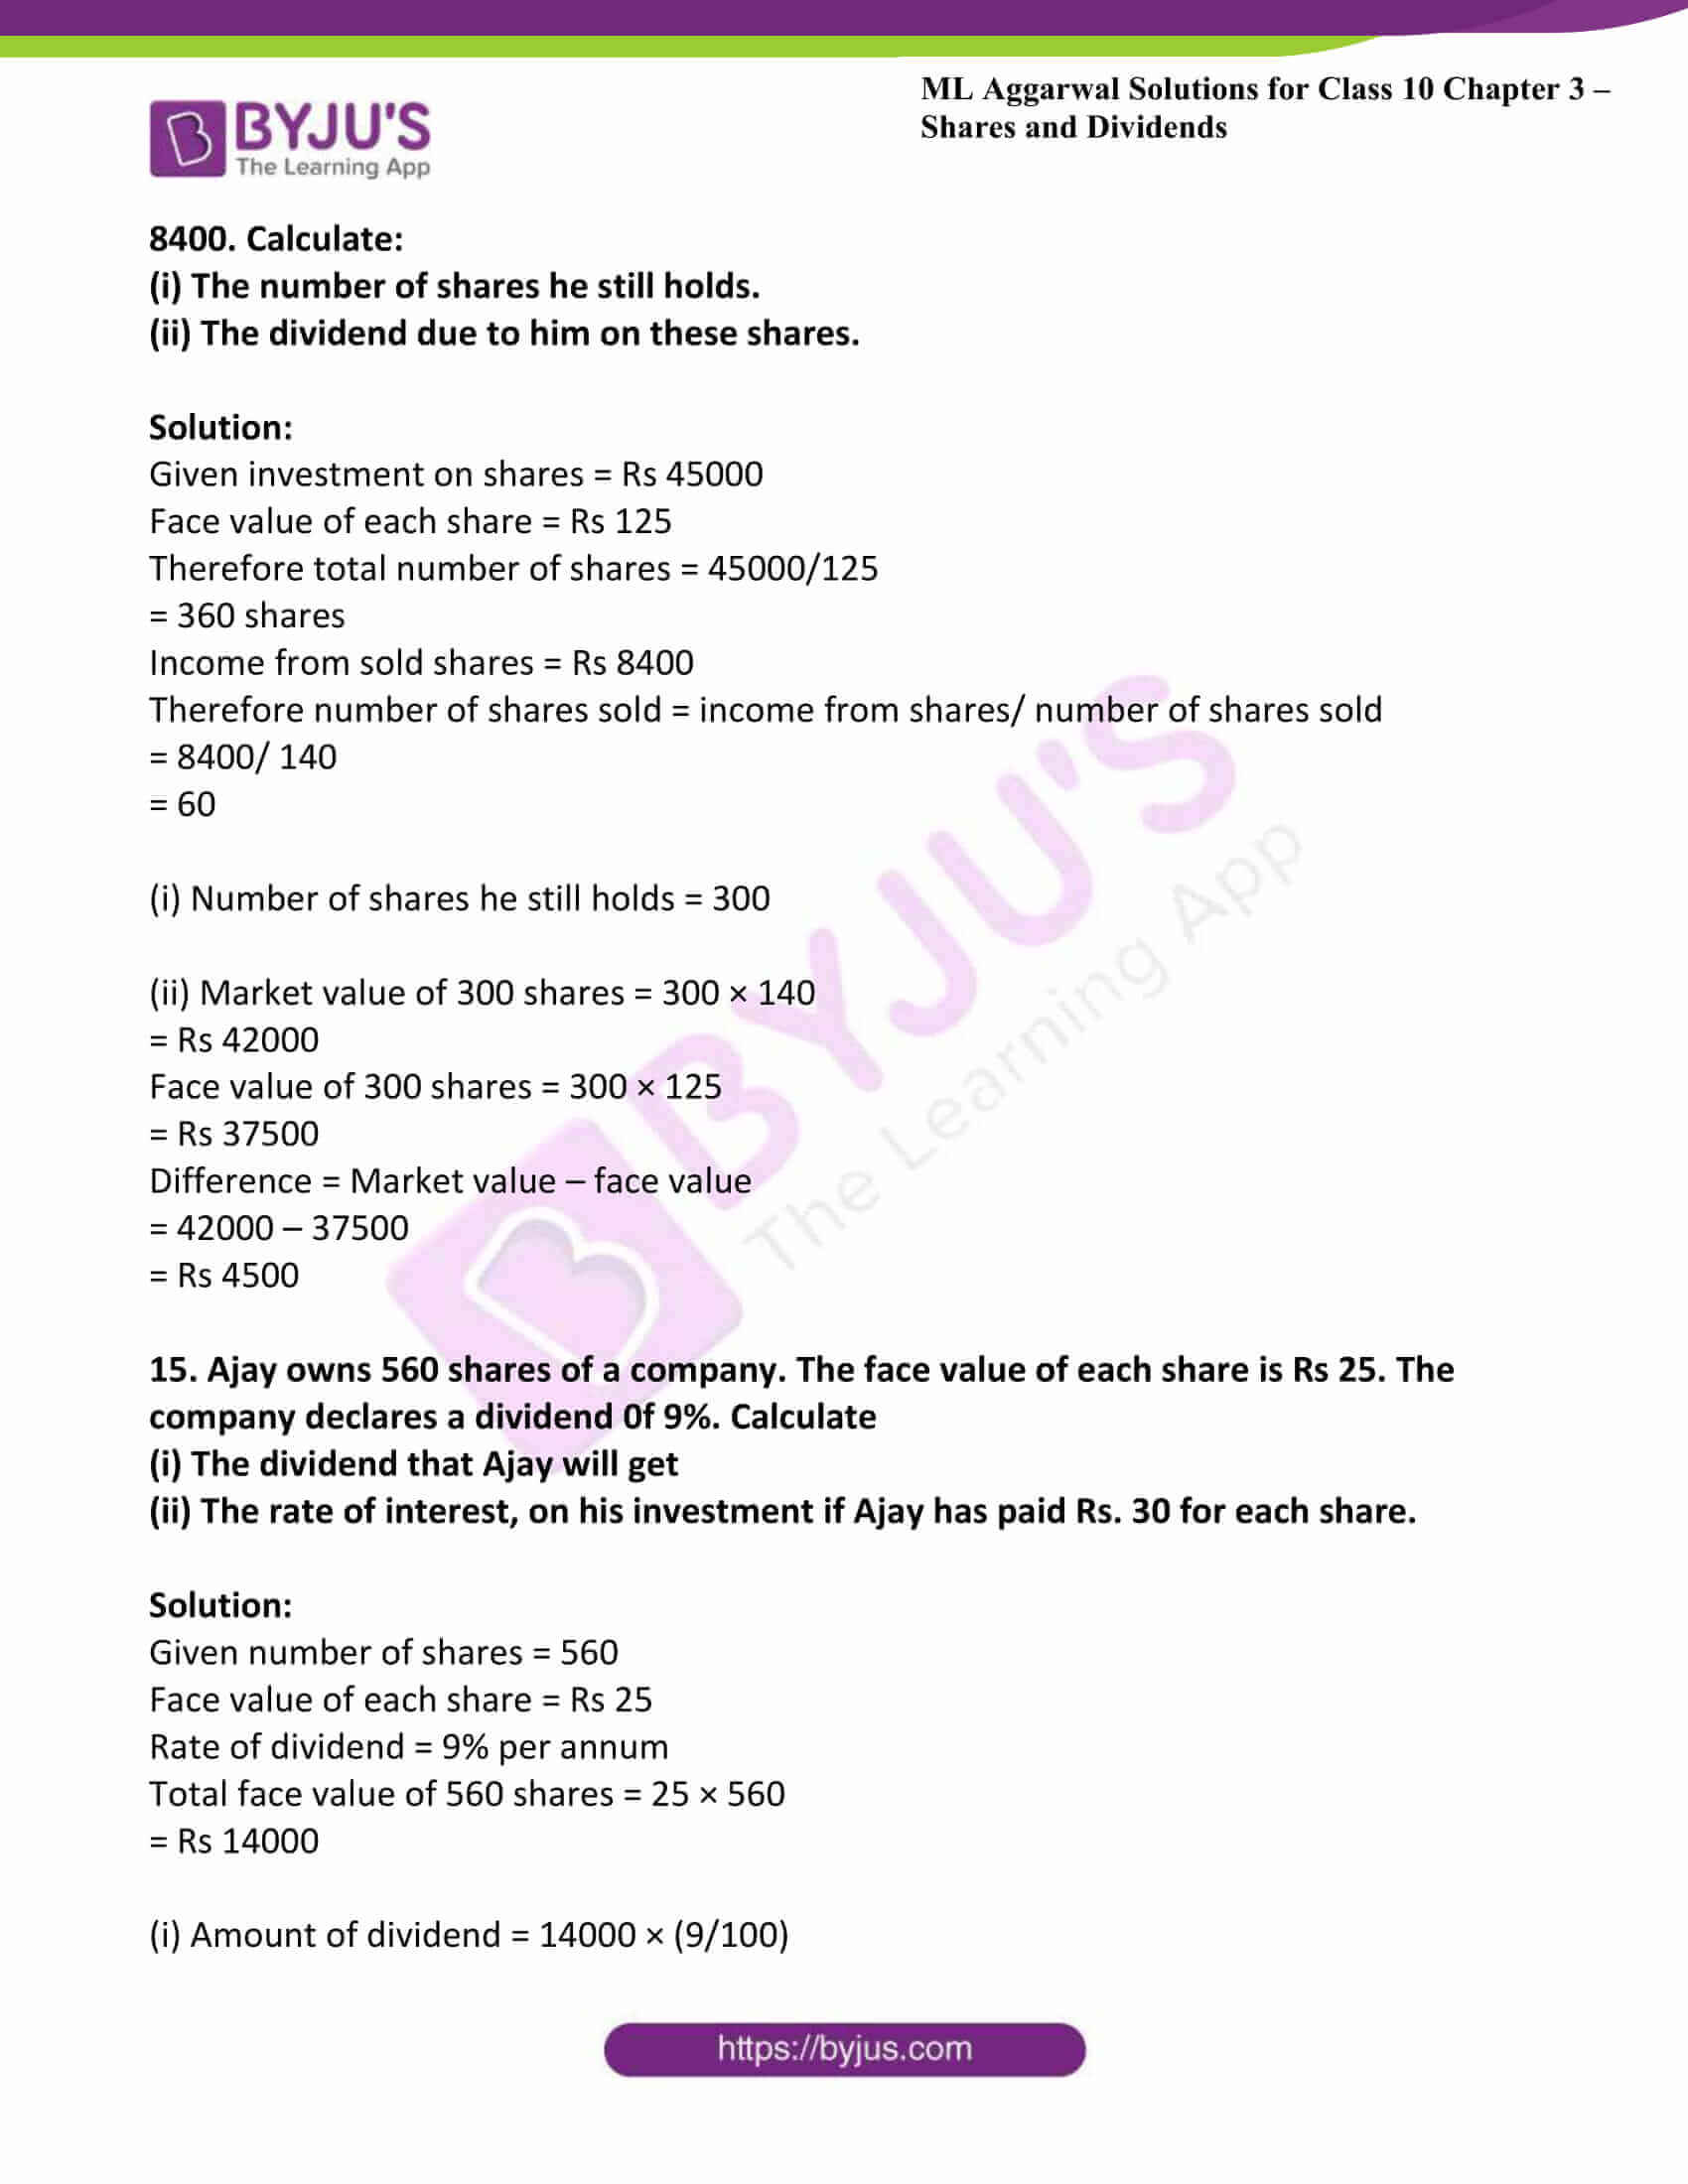 ml aggarwal solutions class 10 maths chapter 3 07